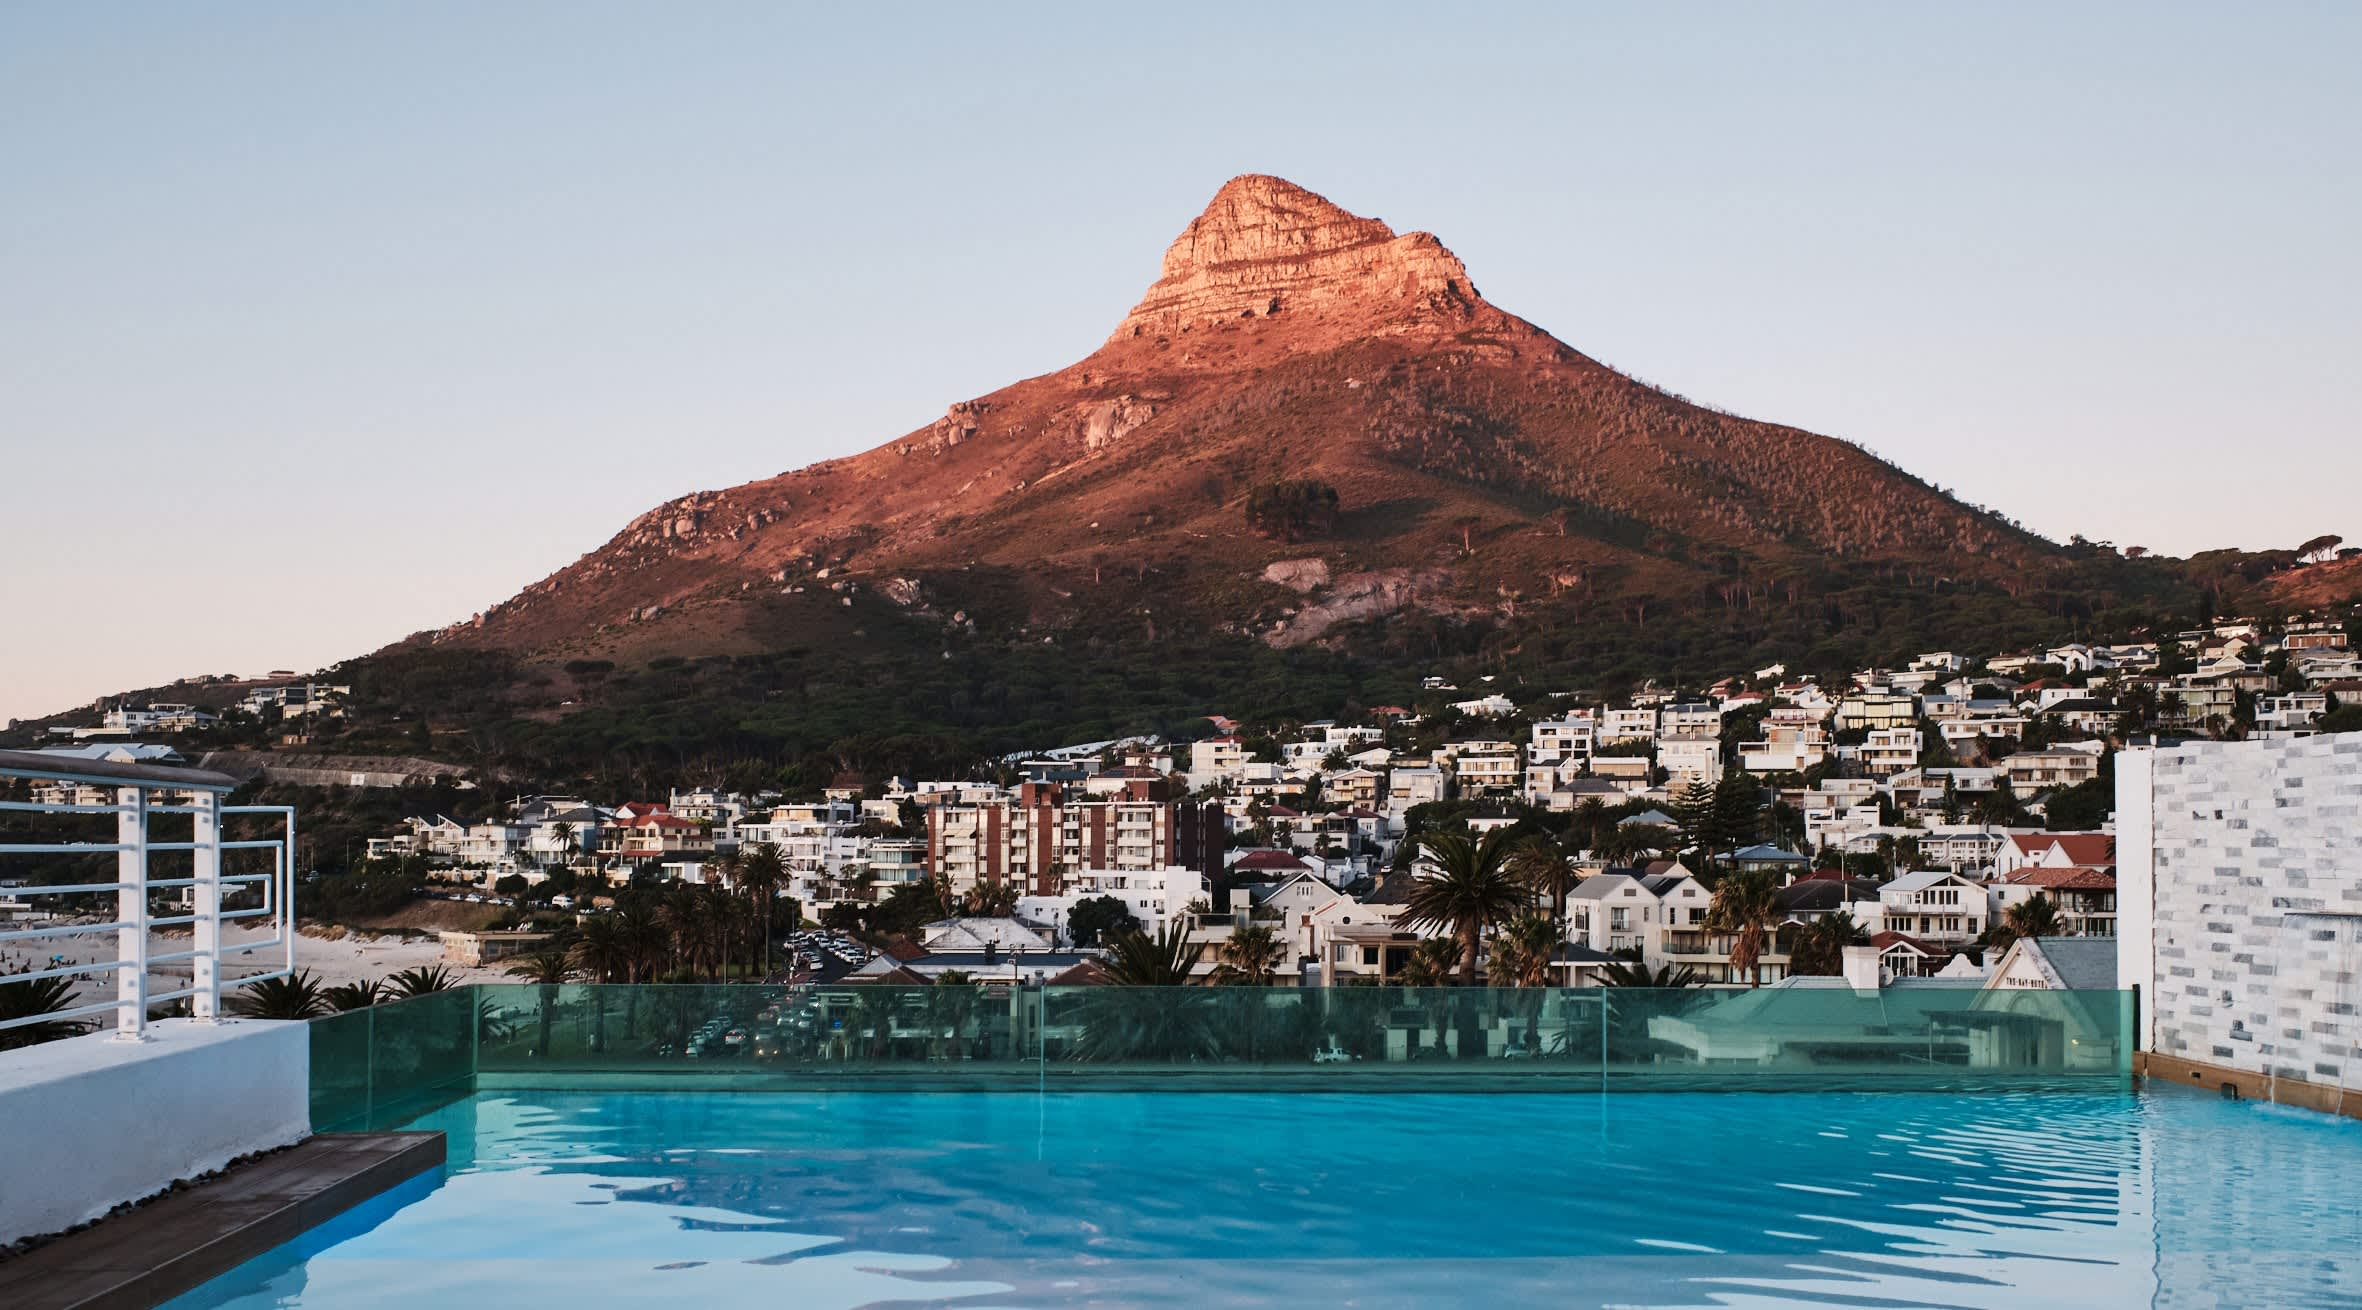 The Marly Boutique Hotel: 1 Night Stay for 2 in a Mountain Facing room on Camps Bay beach!